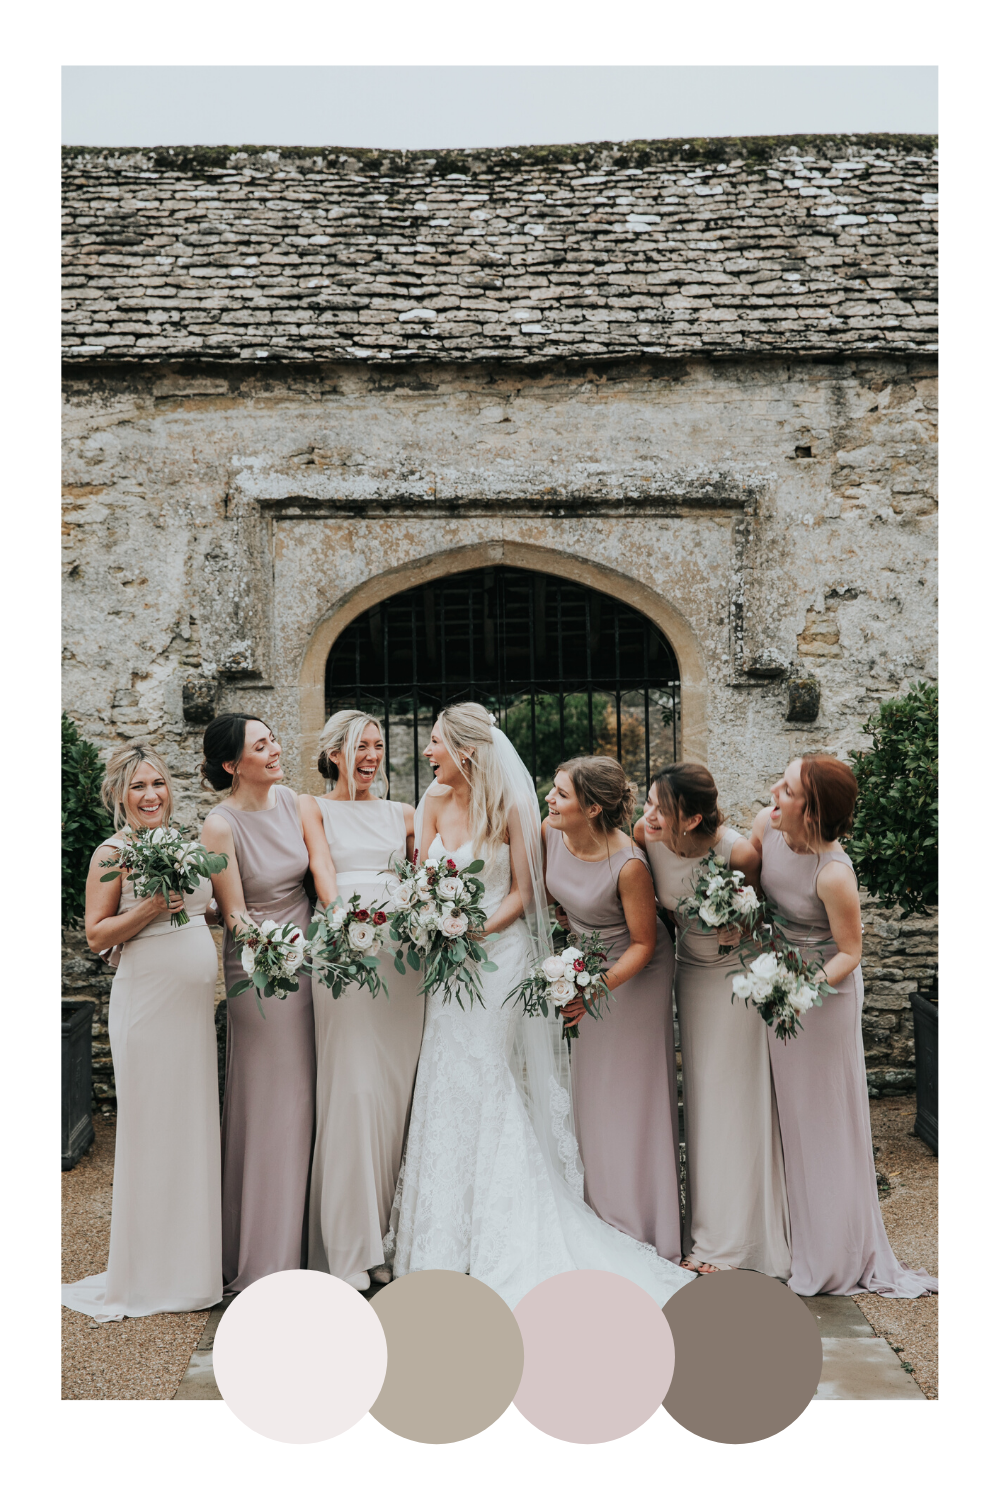 7 Colour Schemes For A Dreamy Winter Wedding In 2020 Wedding Color Schemes Summer Wedding Color Schemes Winter January Wedding Colors